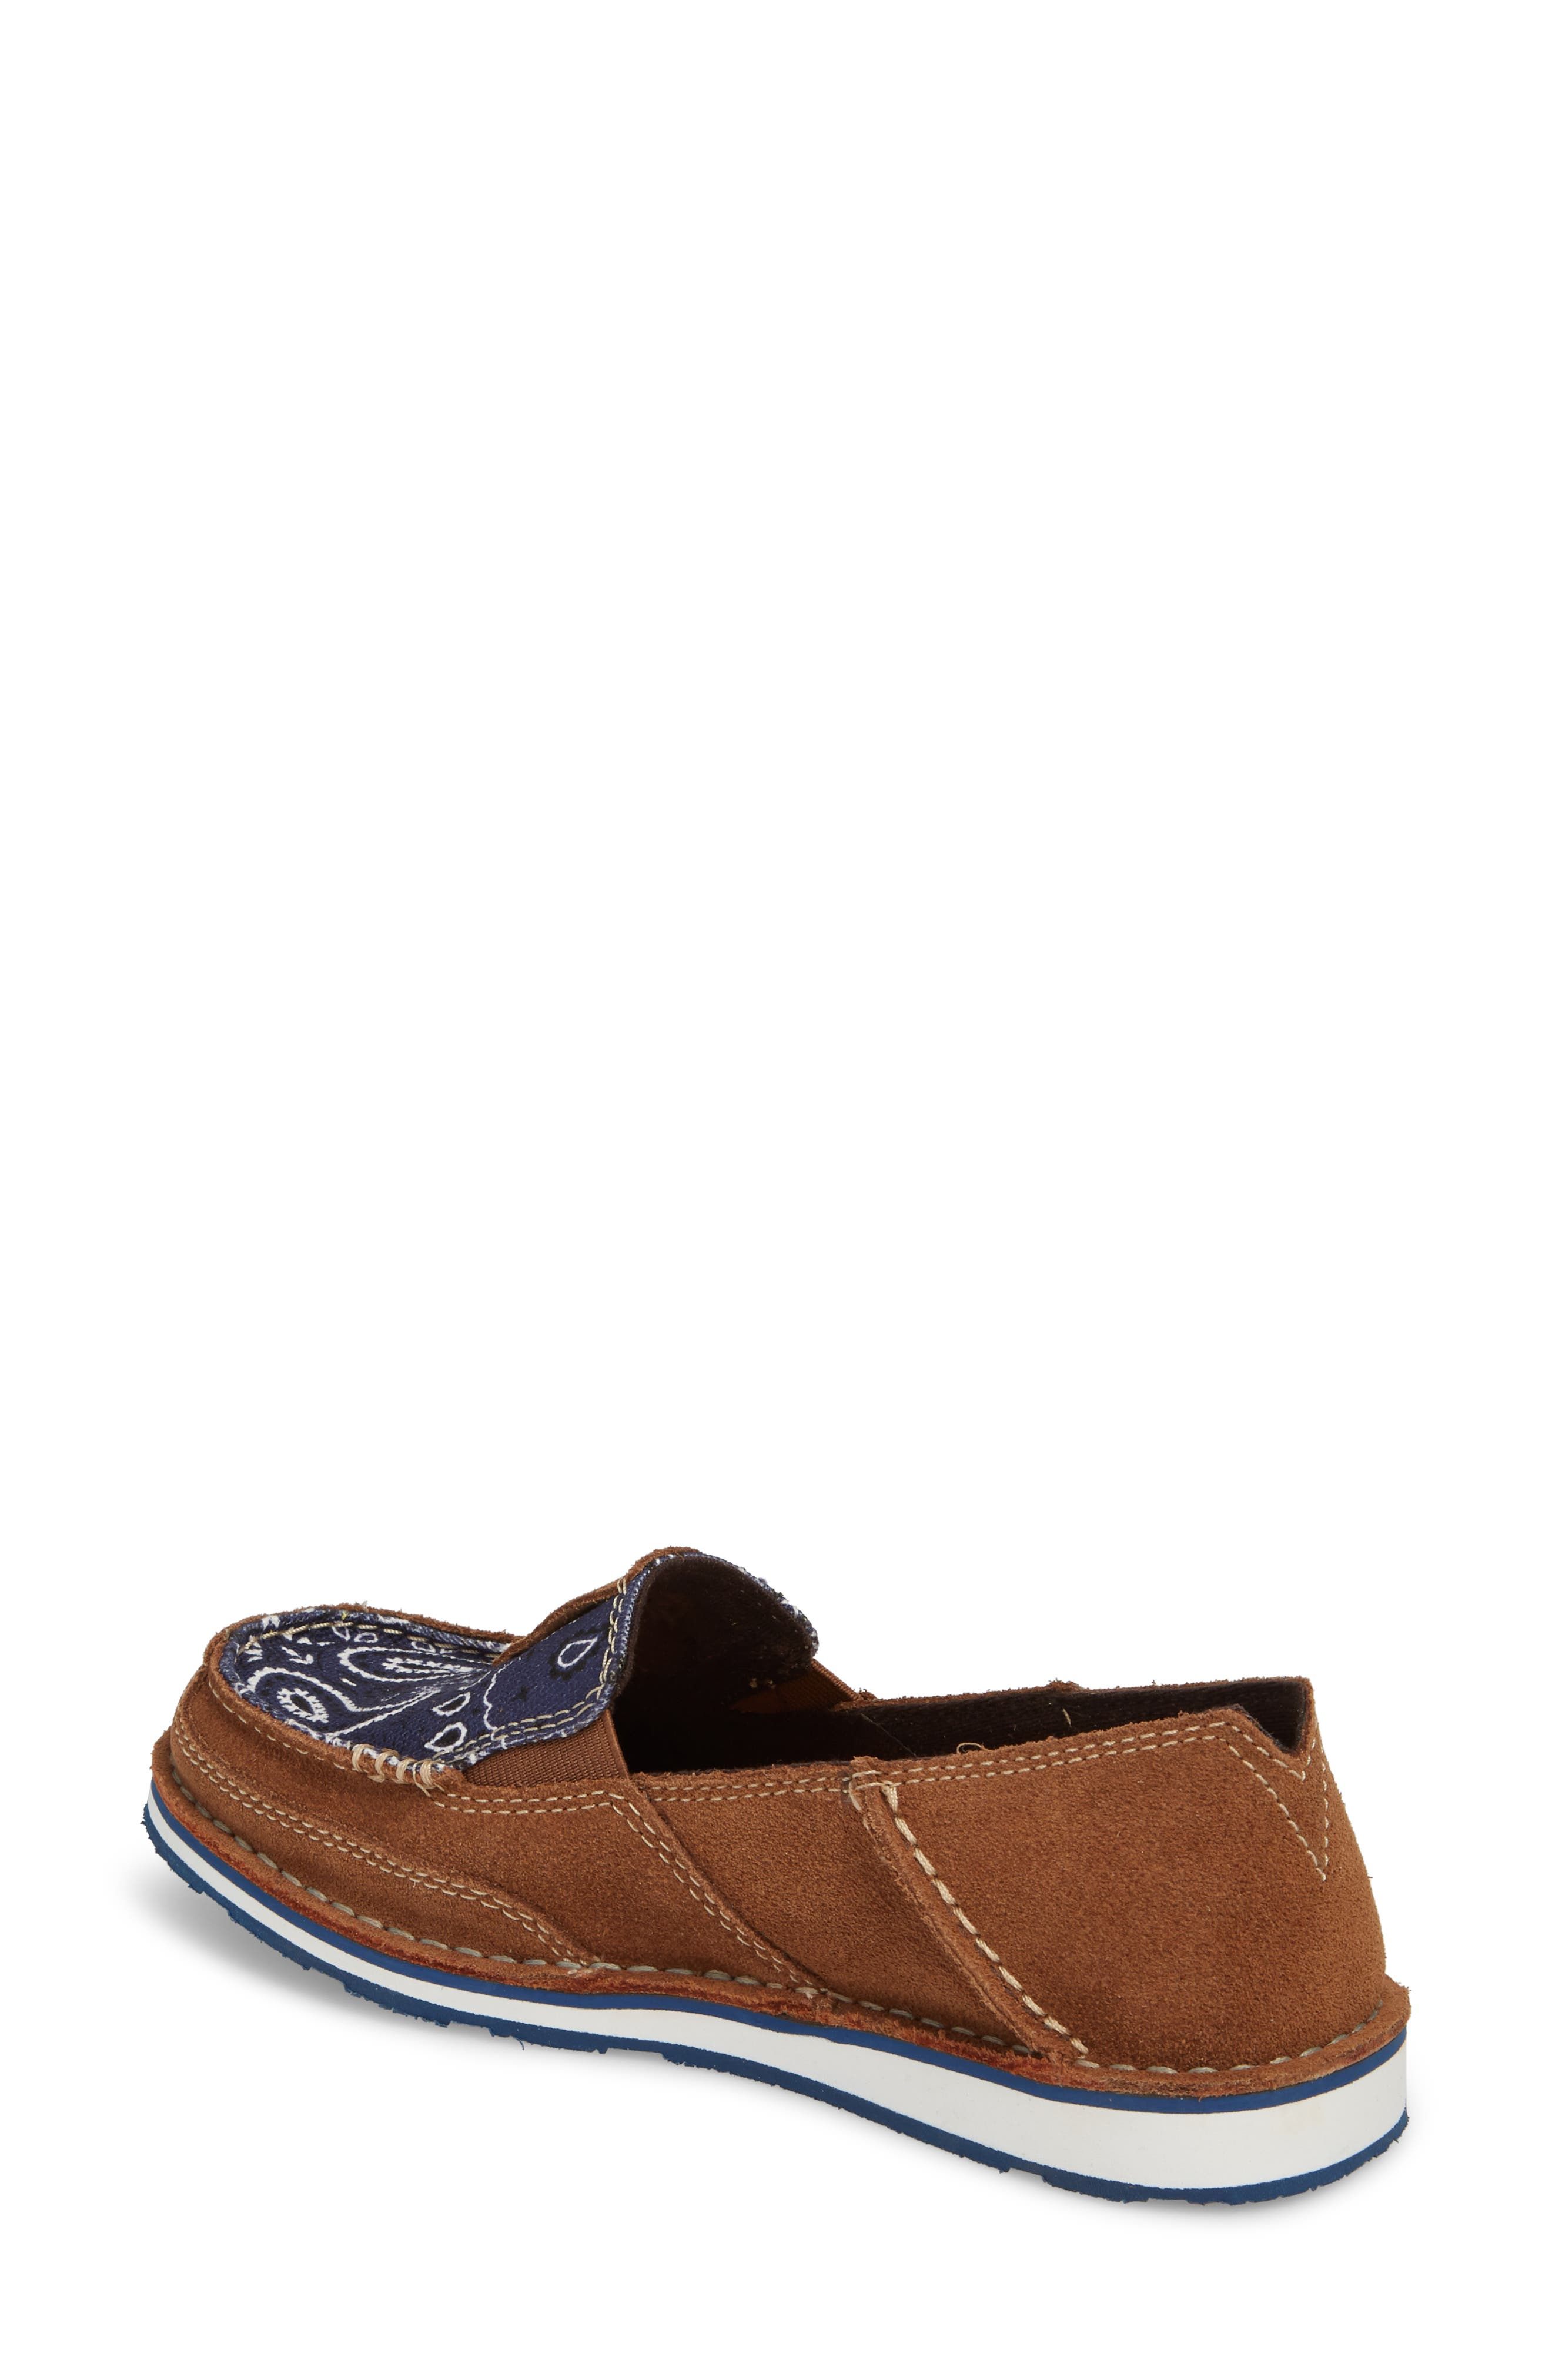 Cruiser Slip-On Loafer,                             Alternate thumbnail 2, color,                             Toffee Leather